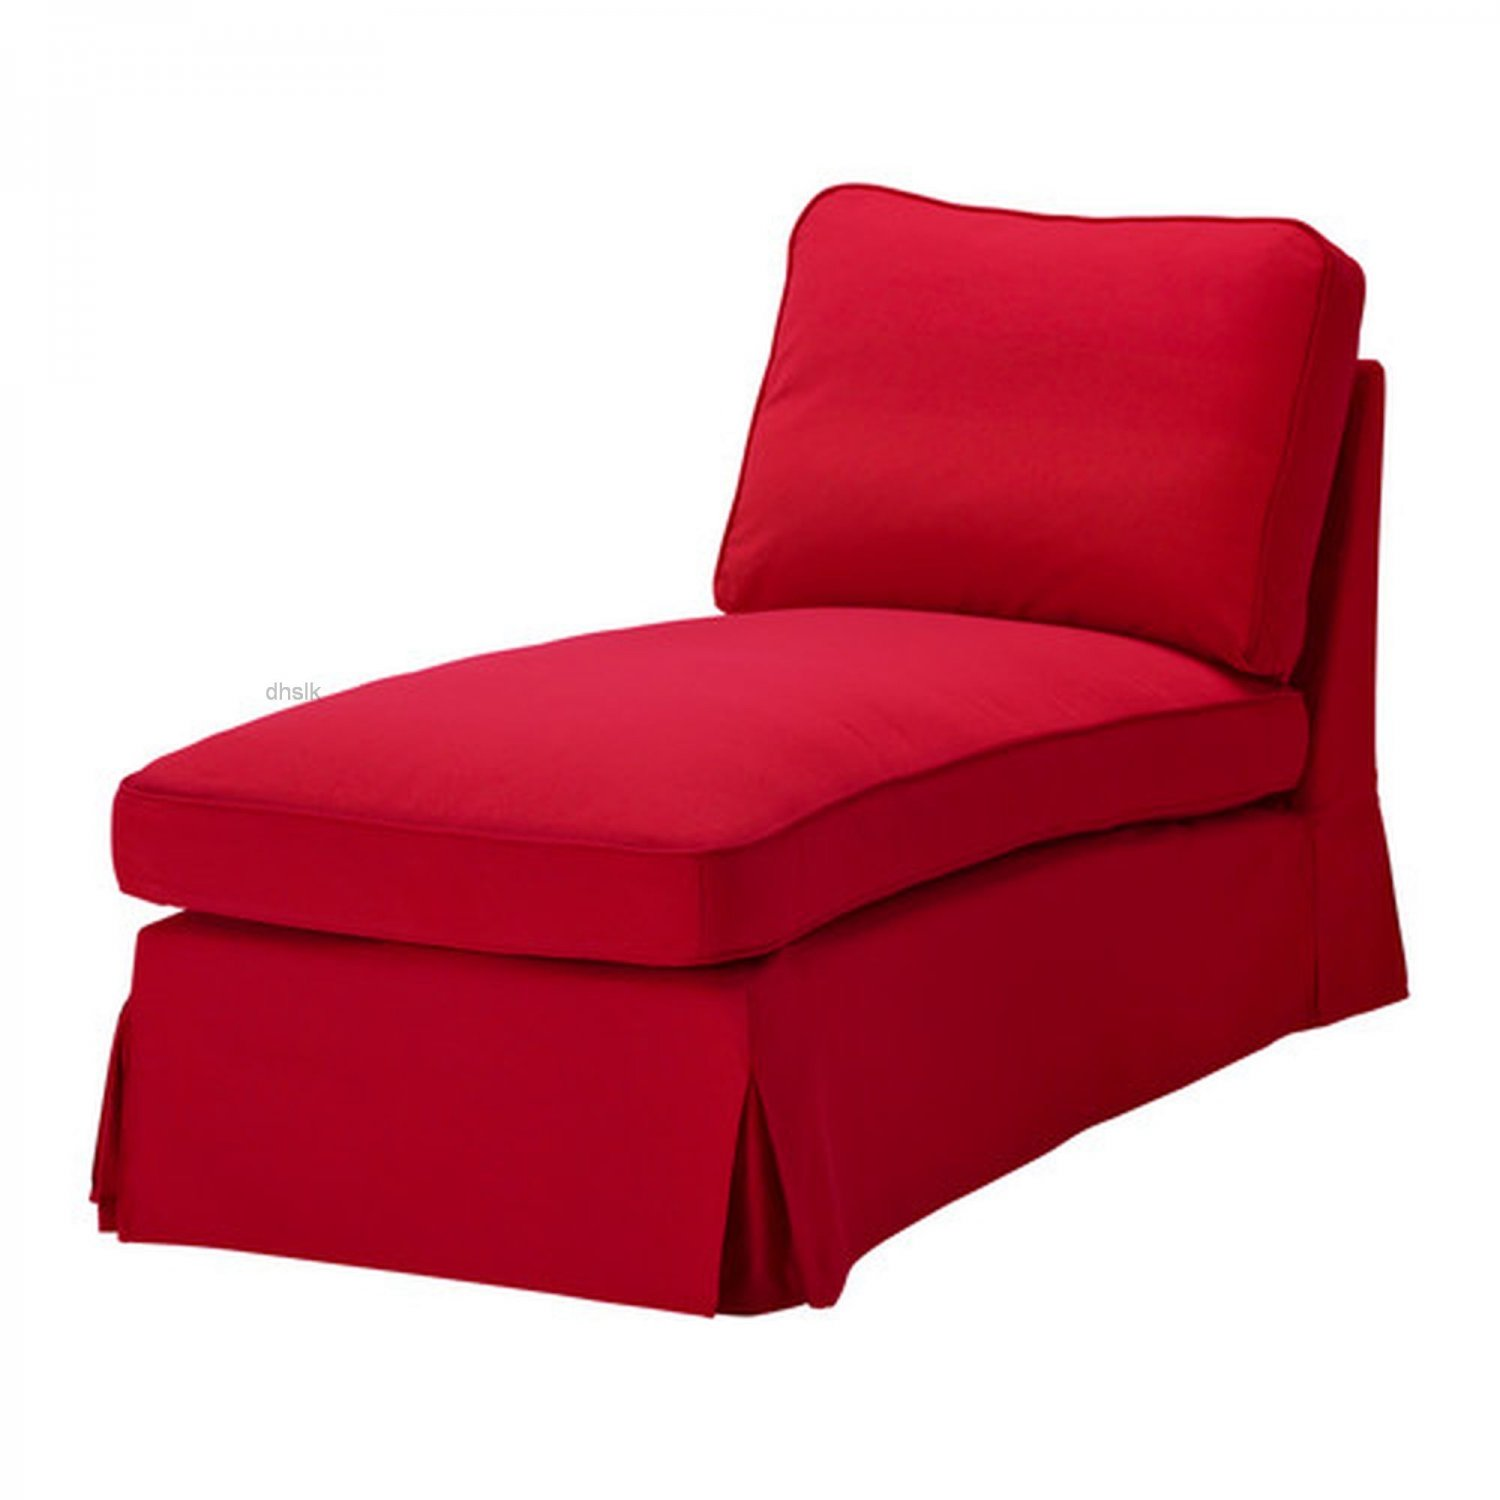 Ikea ektorp free standing chaise cover slipcover idemo red for Ikea sofa slipcovers discontinued